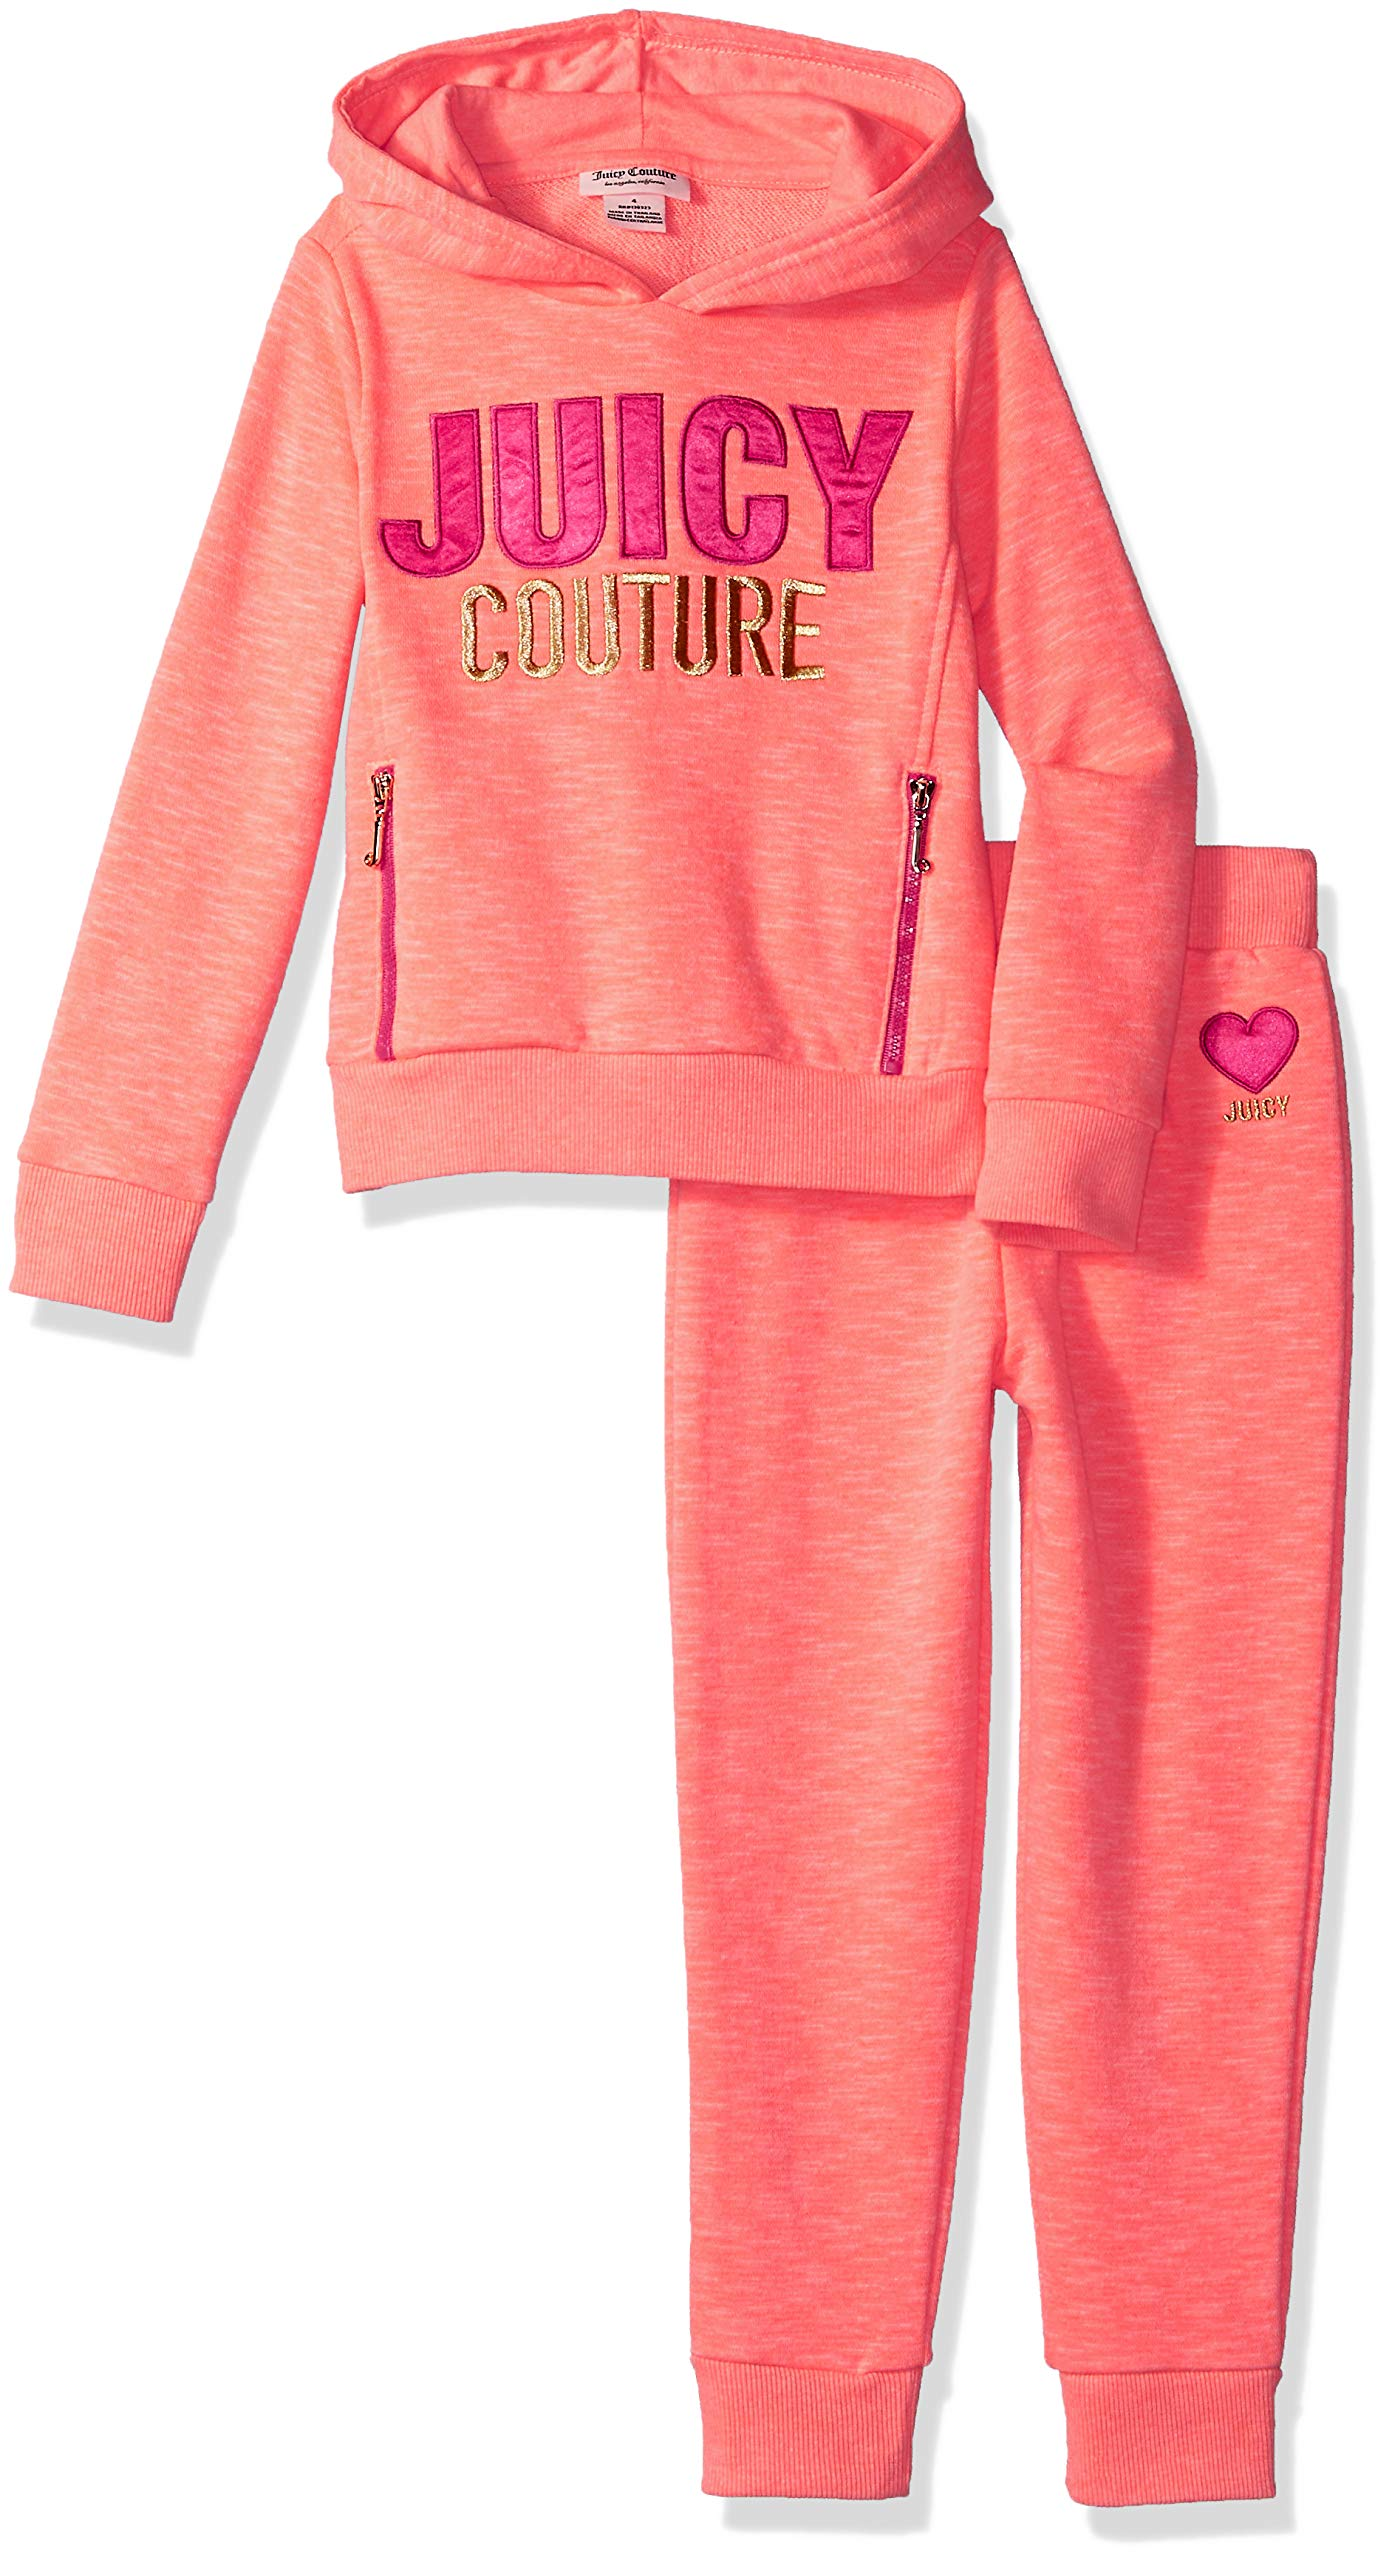 Juicy Couture Girls' Big 2 Pieces Hoody Pants Set, Heather Coral, 7